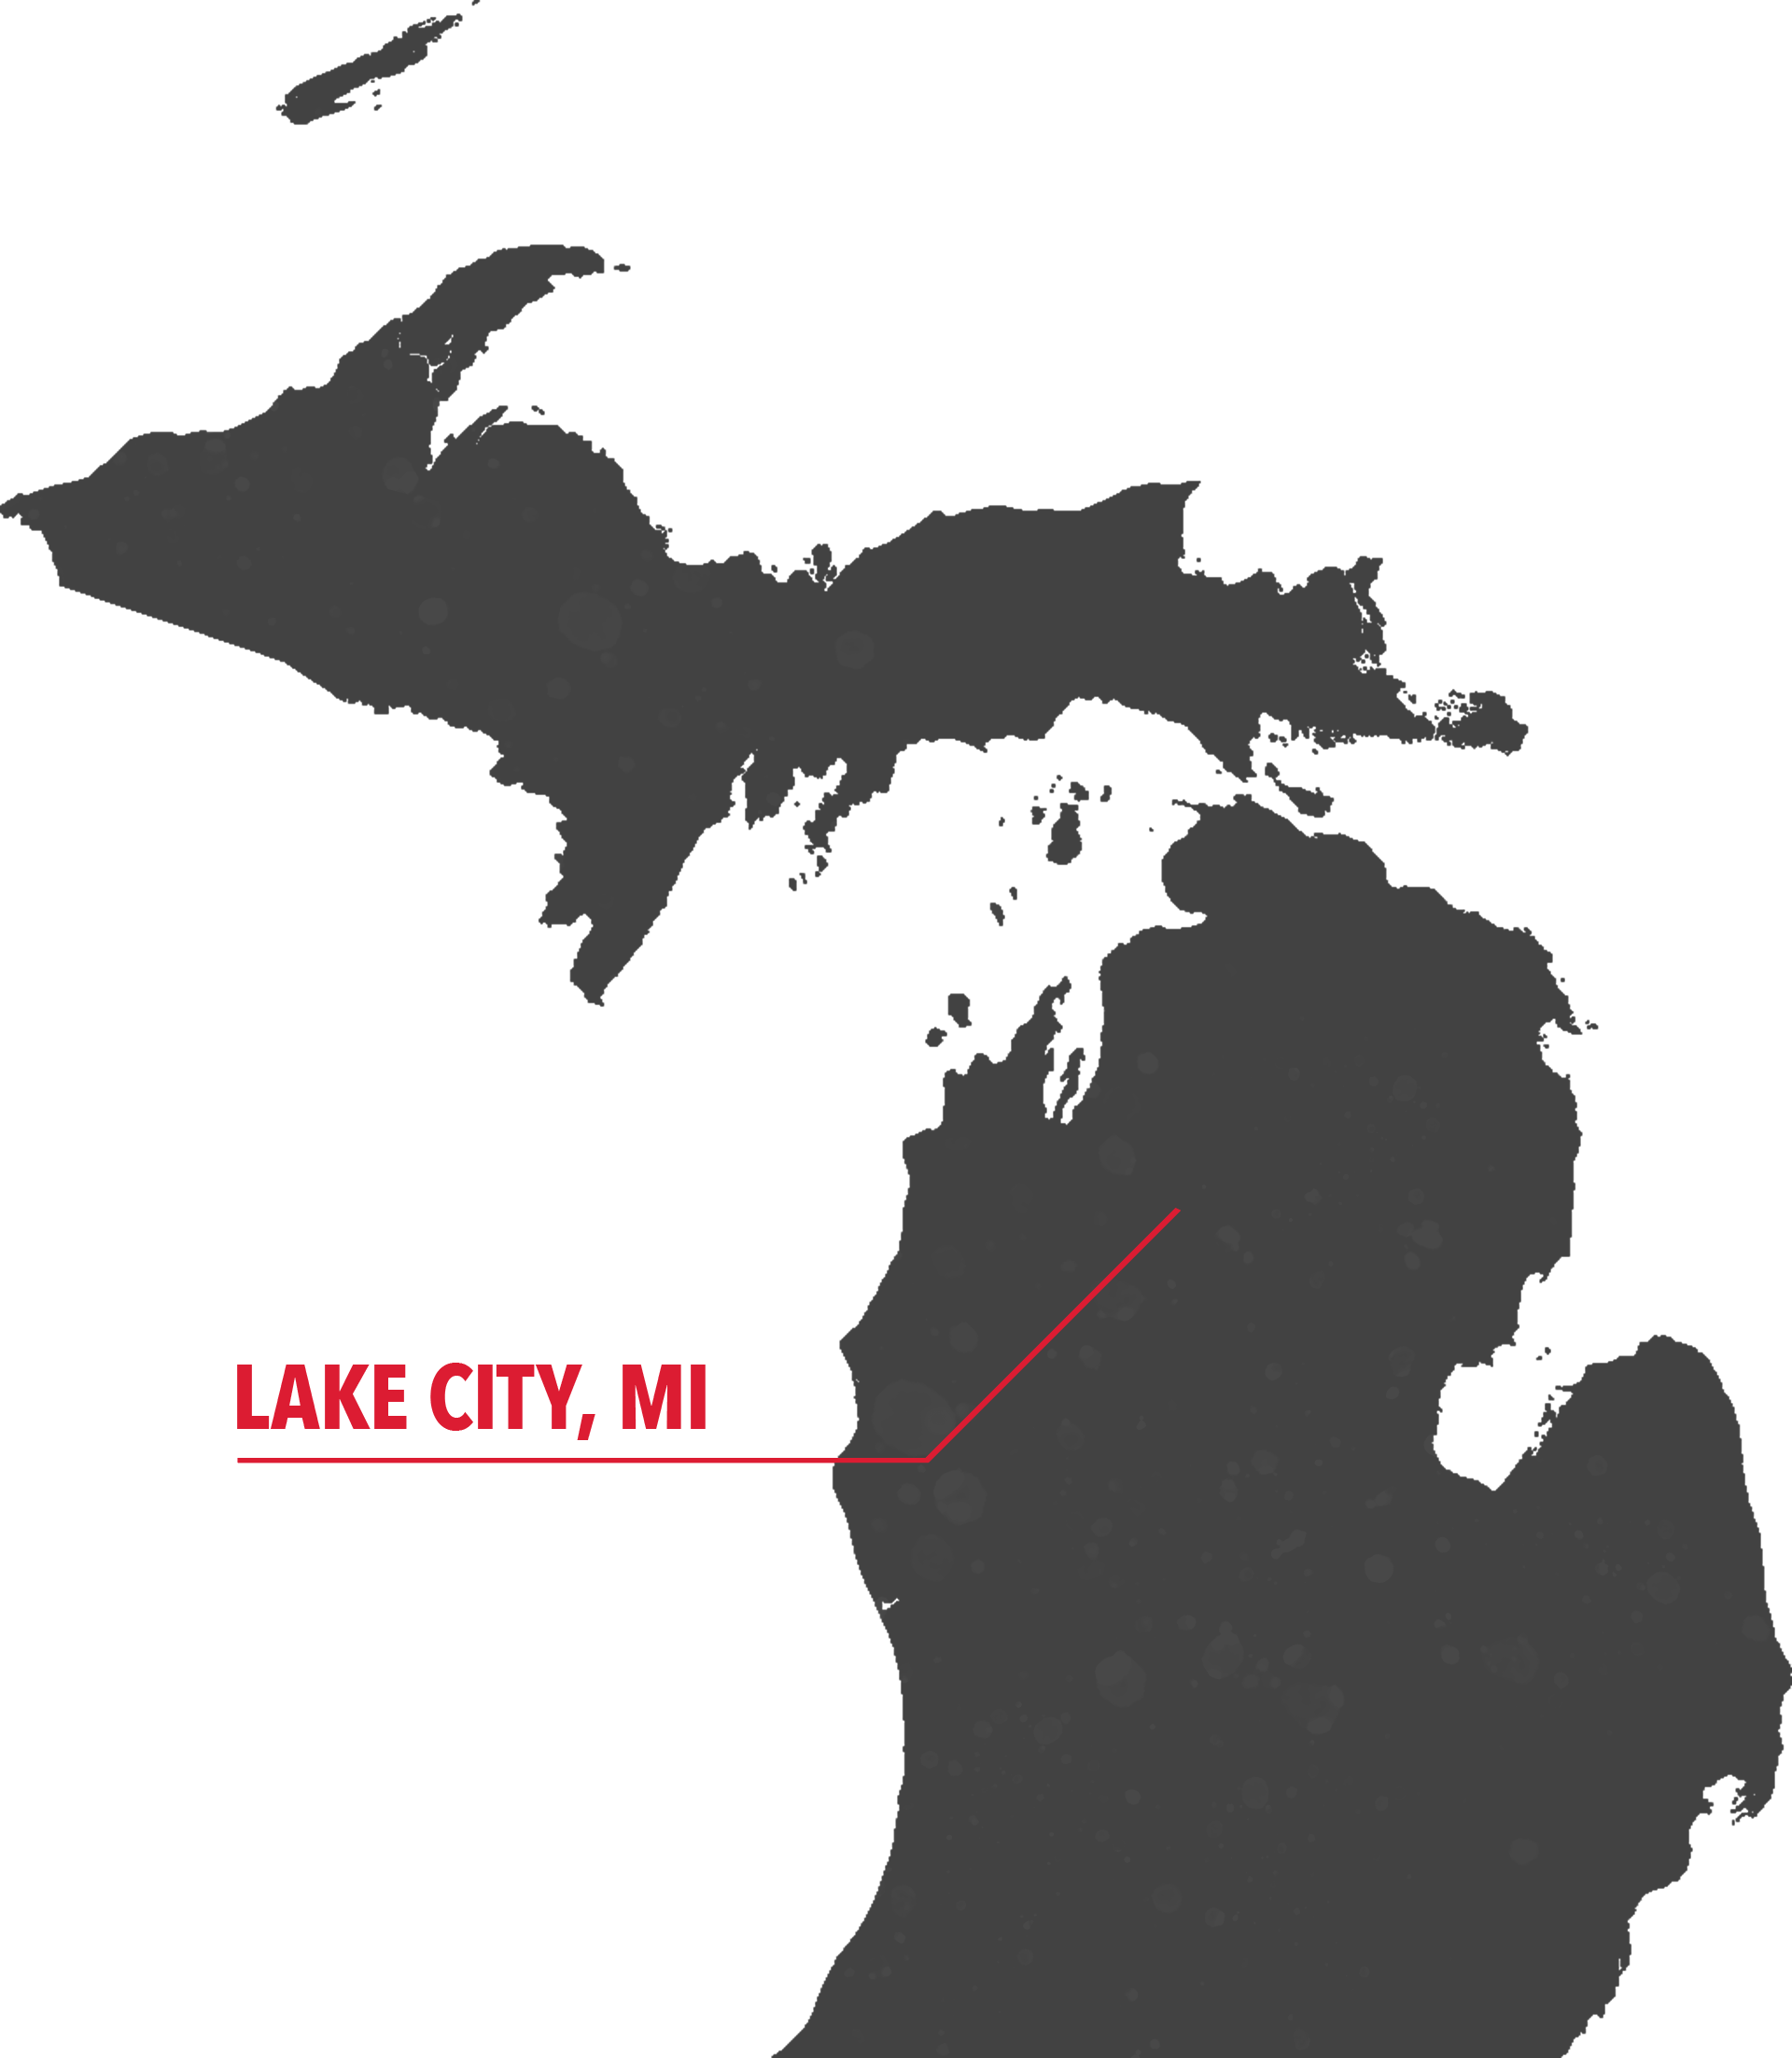 Map of Michigan Lake City